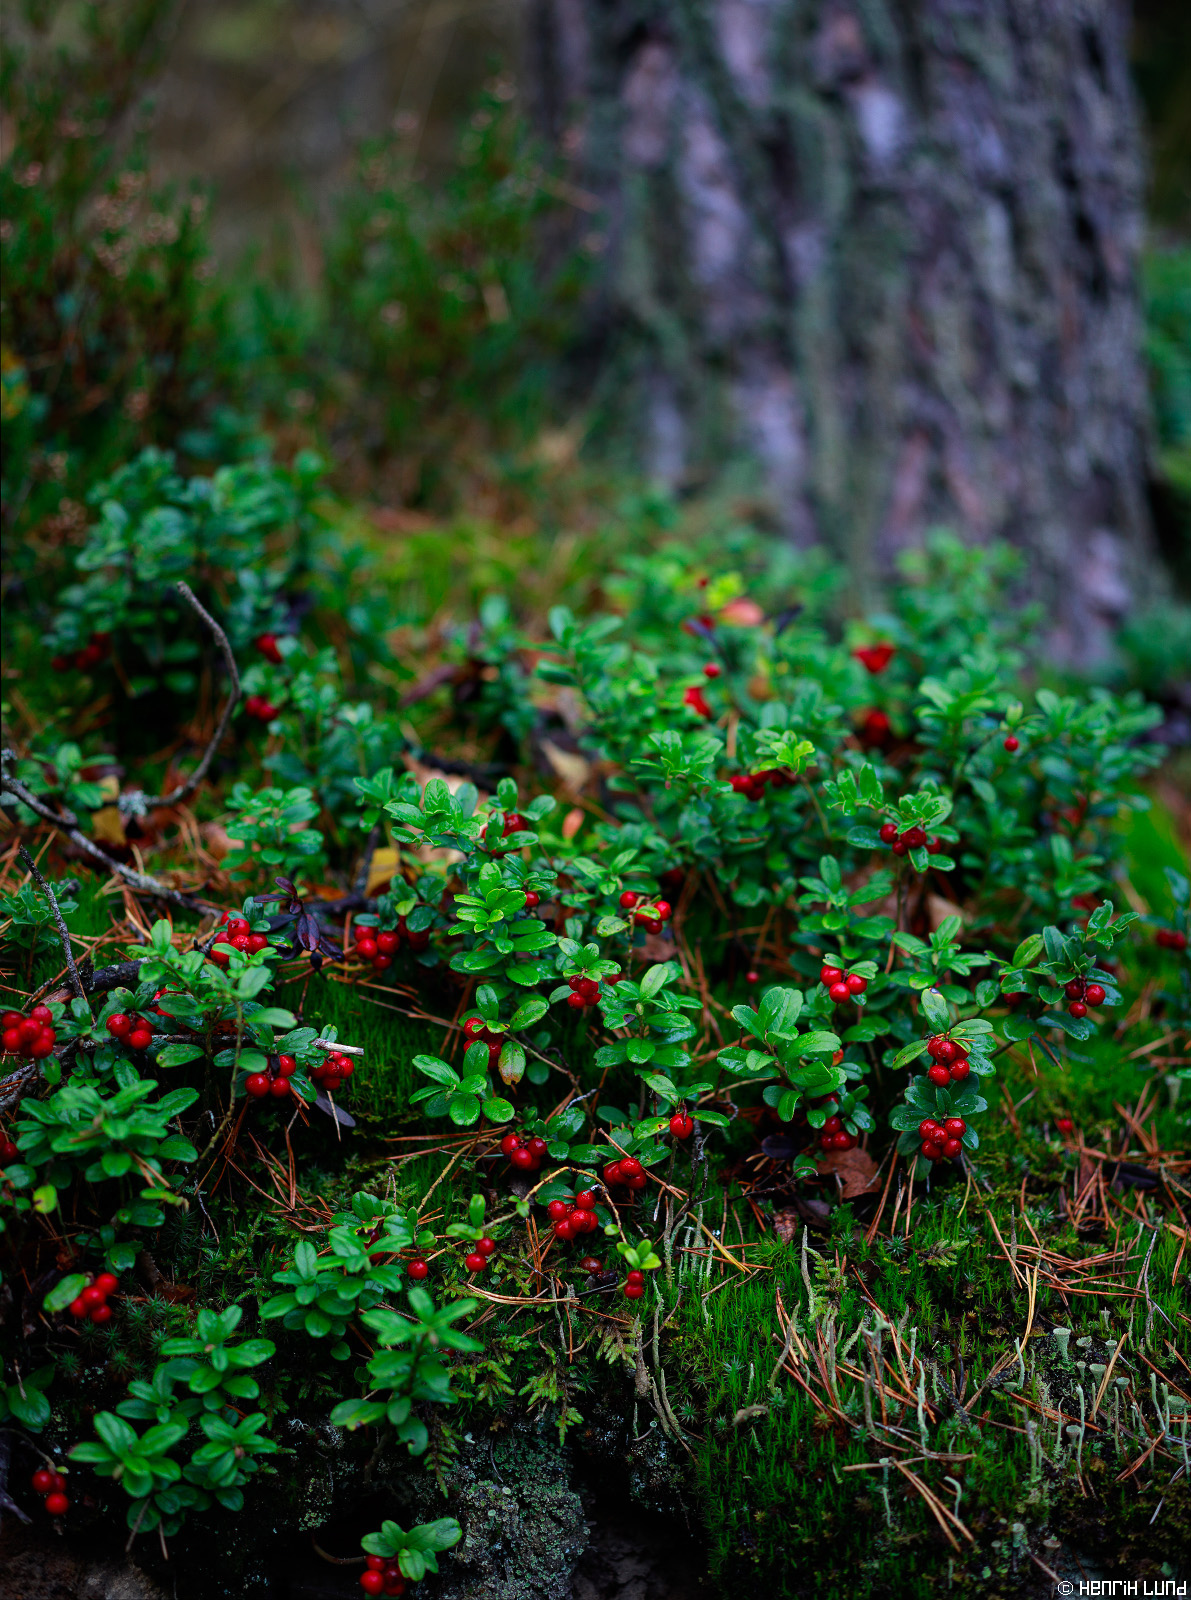 Vertical panorama shot of lingonberries. TS-E with shift and tilt used and 3 images stitched together. Immersby, Sibbo, Finland. September 2015.